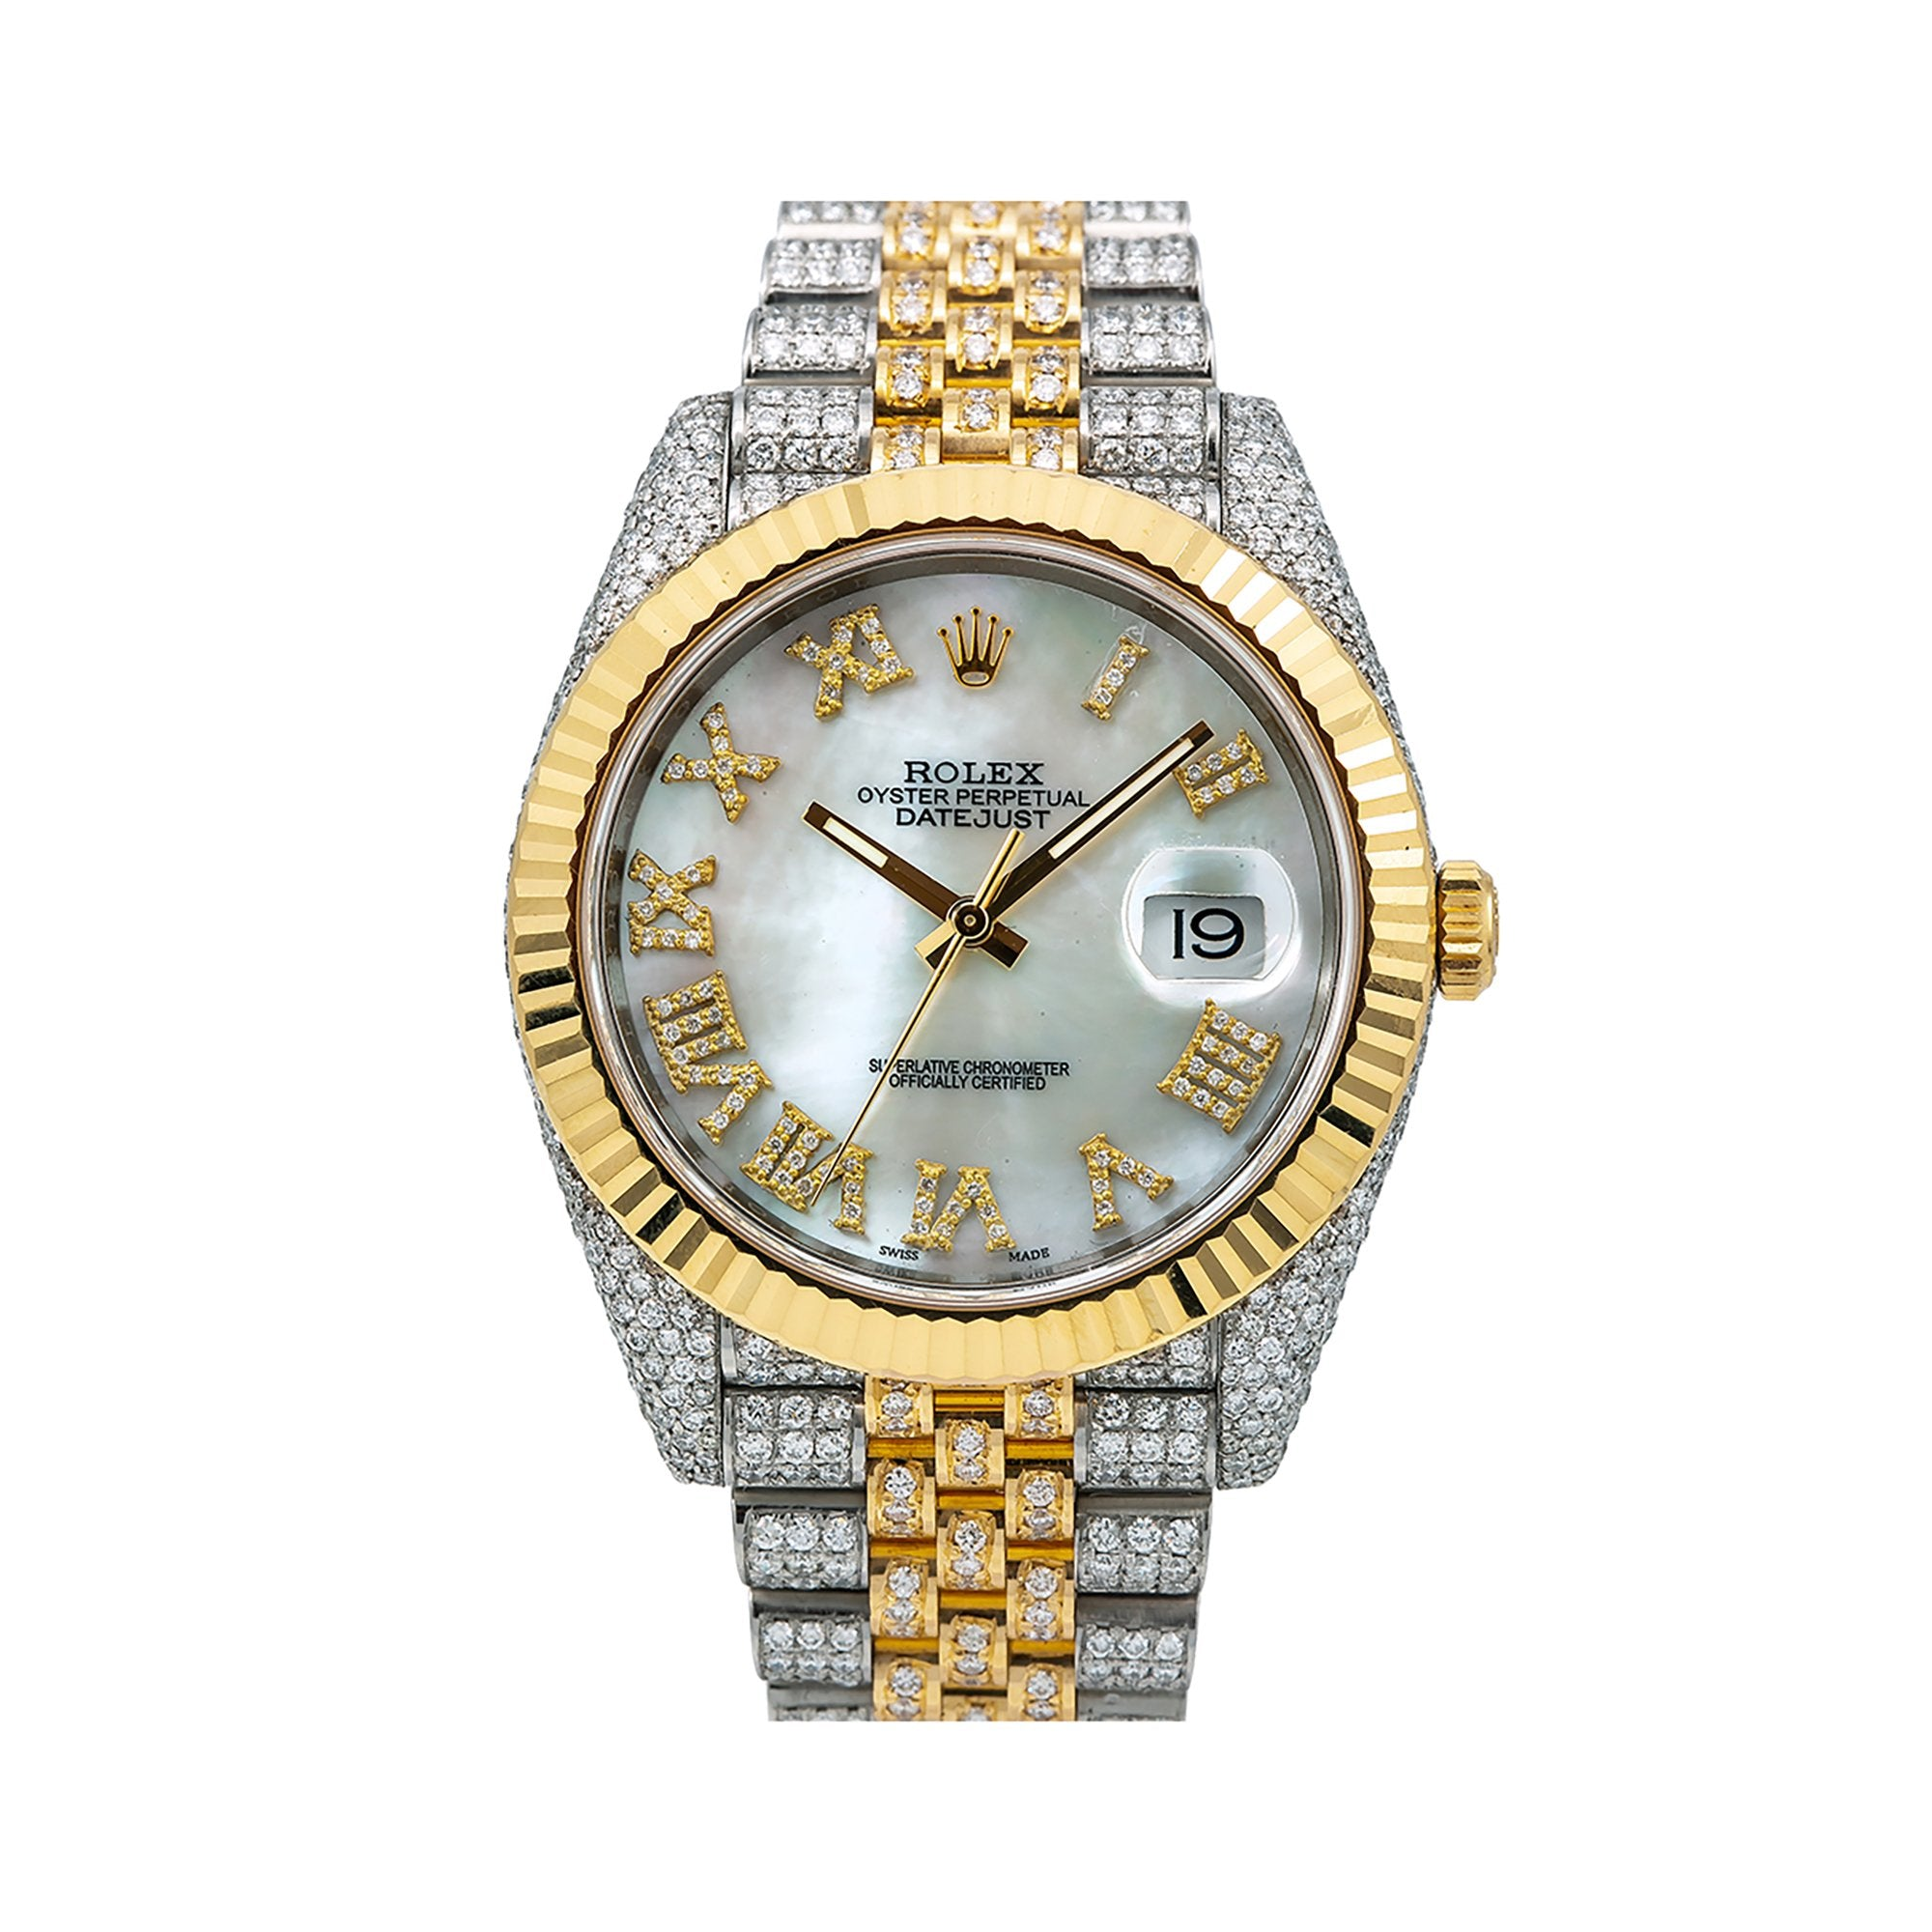 Rolex Datejust Diamond Watch, 126333 41mm, Silver Diamond Dial With Two Tone Bracelet